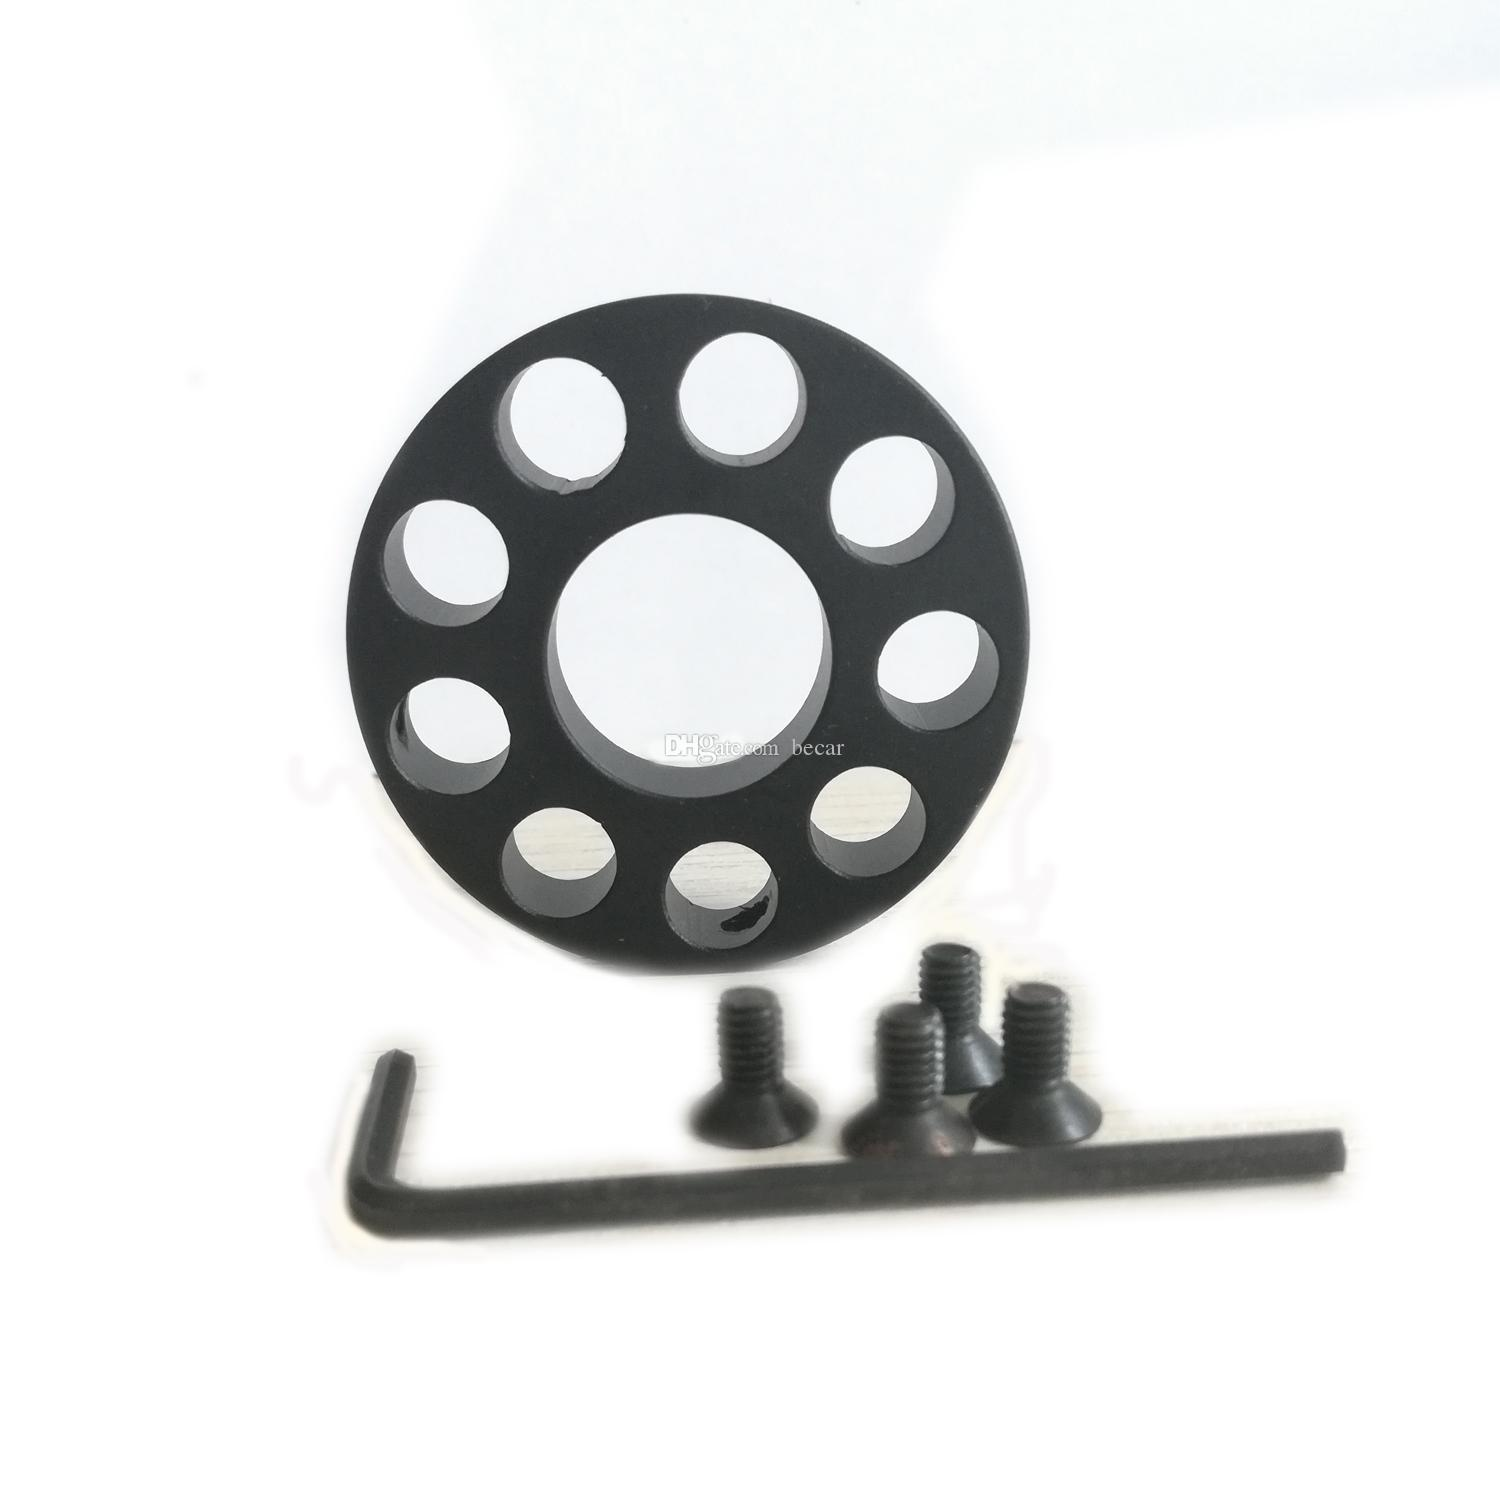 NEW Barrel End Cap For .223/5.56 Free Float Quad Rail Handguard With screws Free Shipping